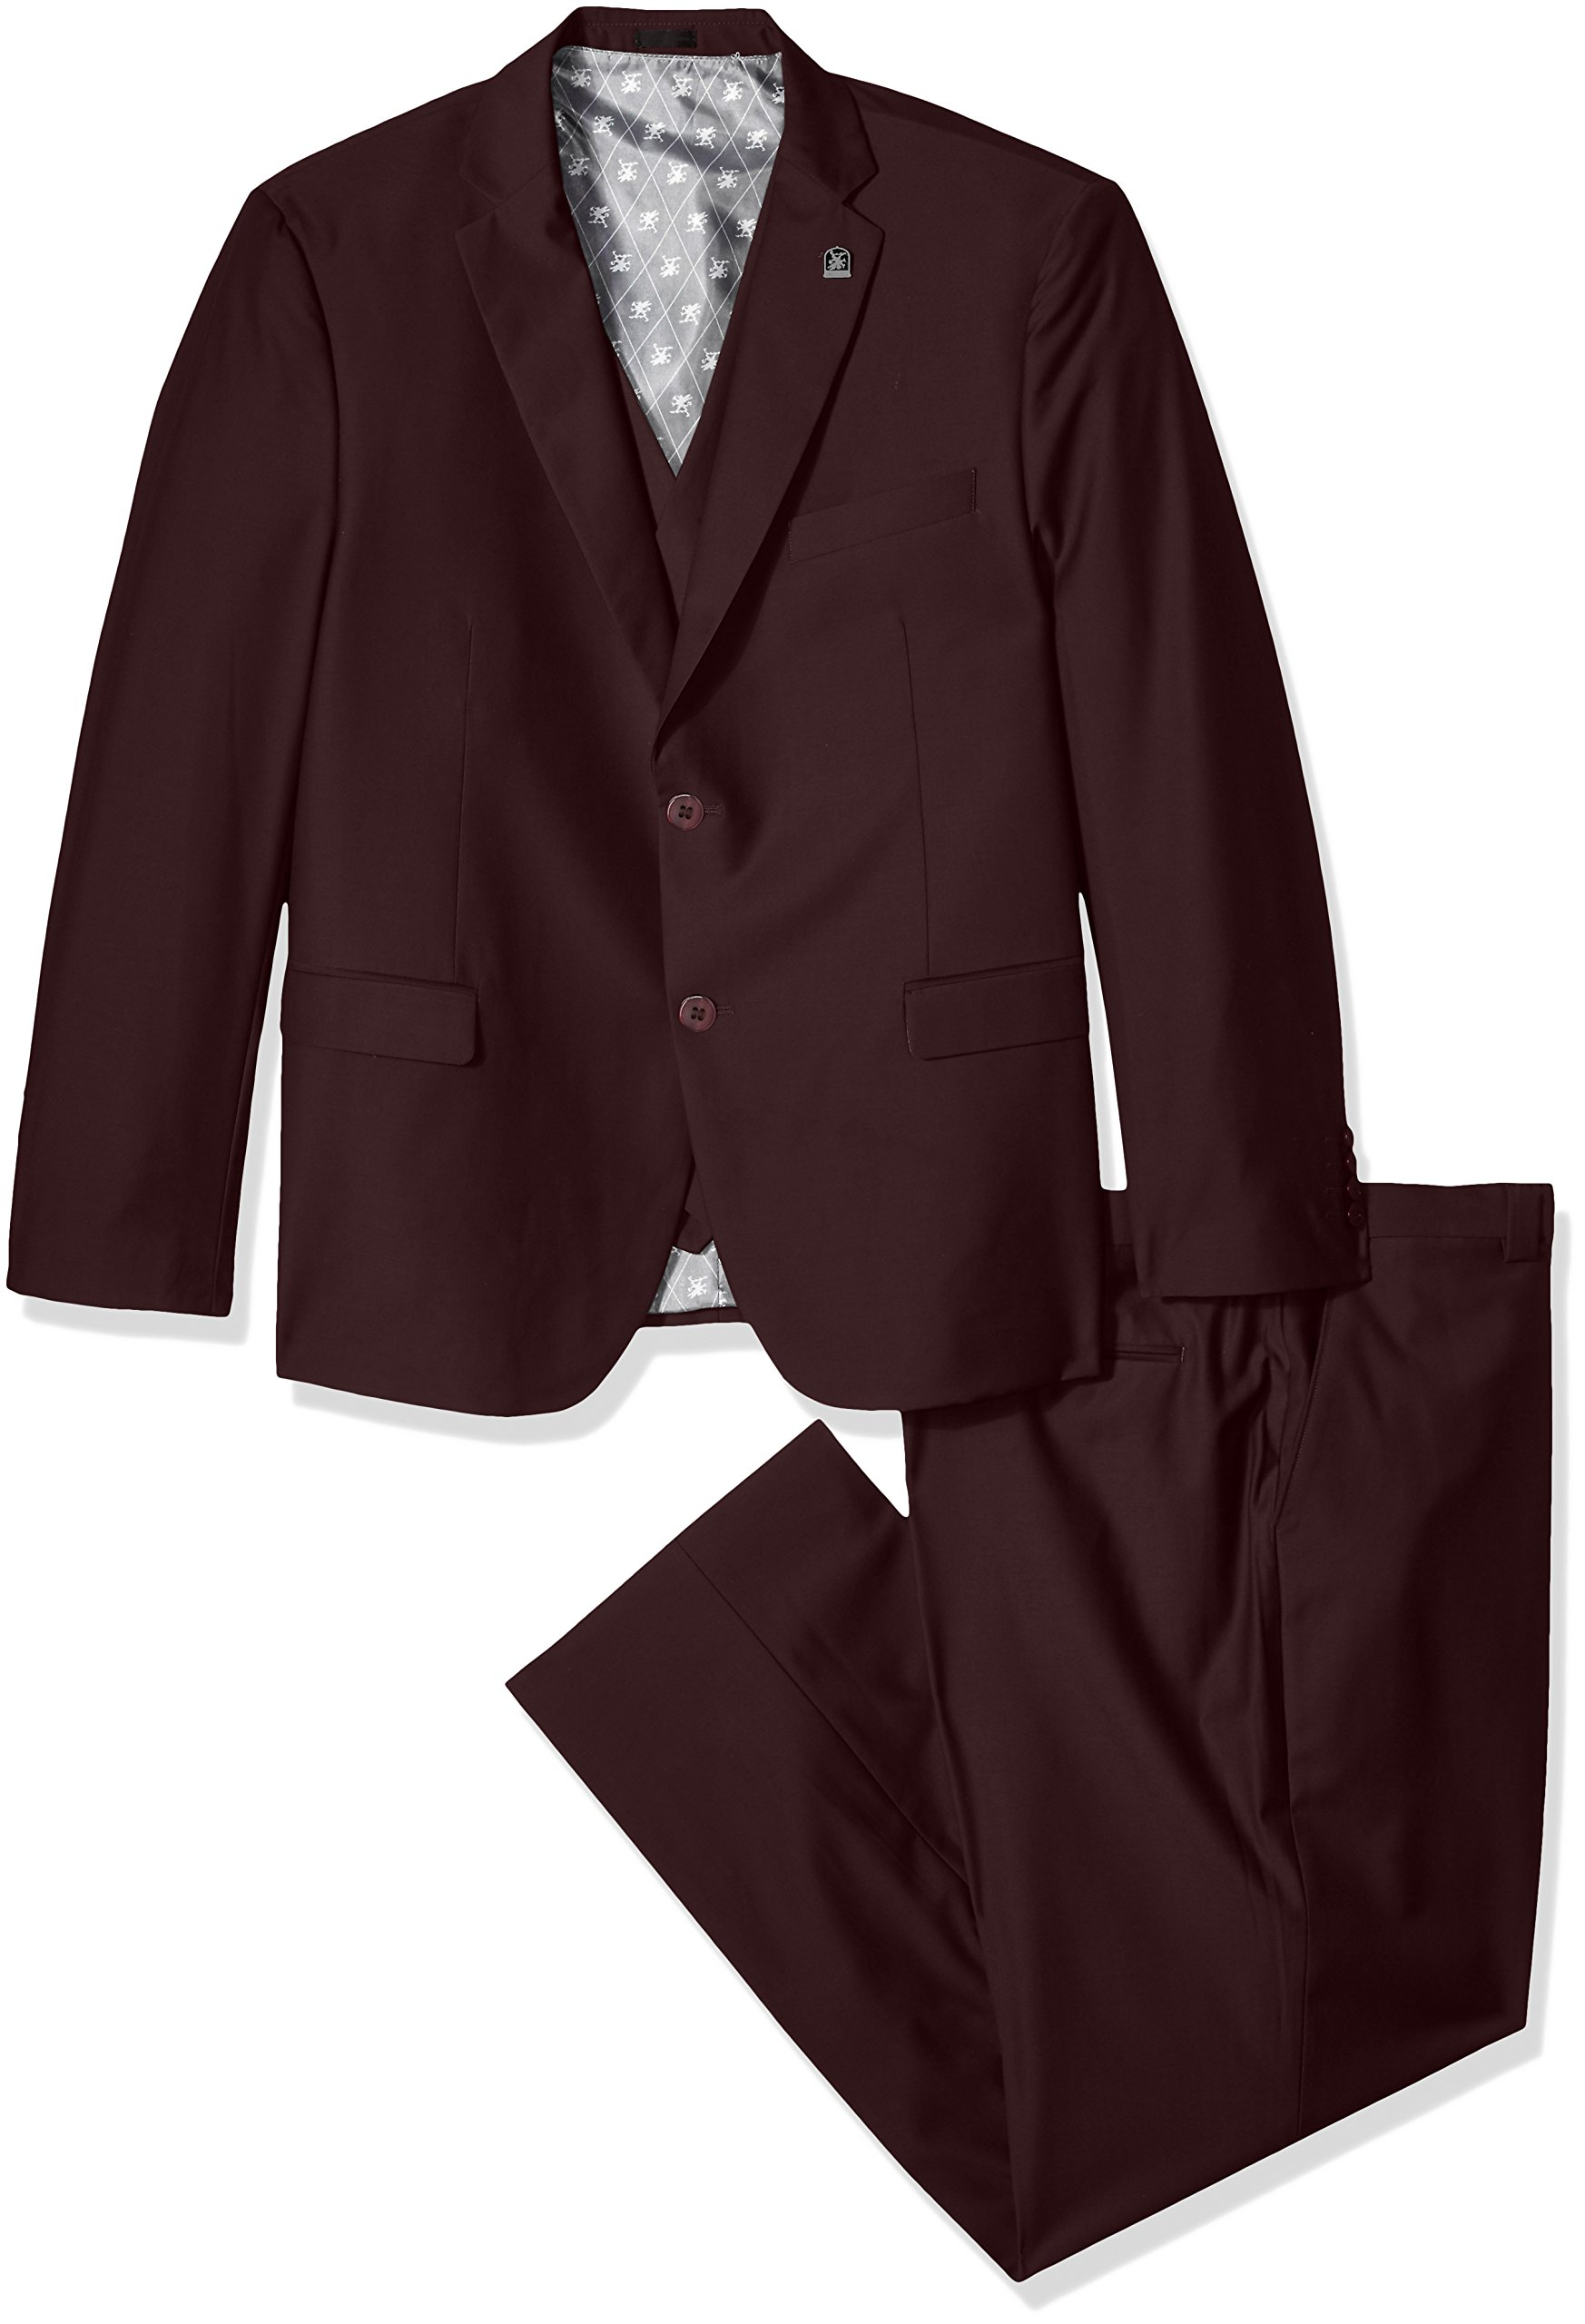 Stacy Adams Men's Big and Tall Bud Vested Slim Fit Suit, Burgundy, 54 Regular